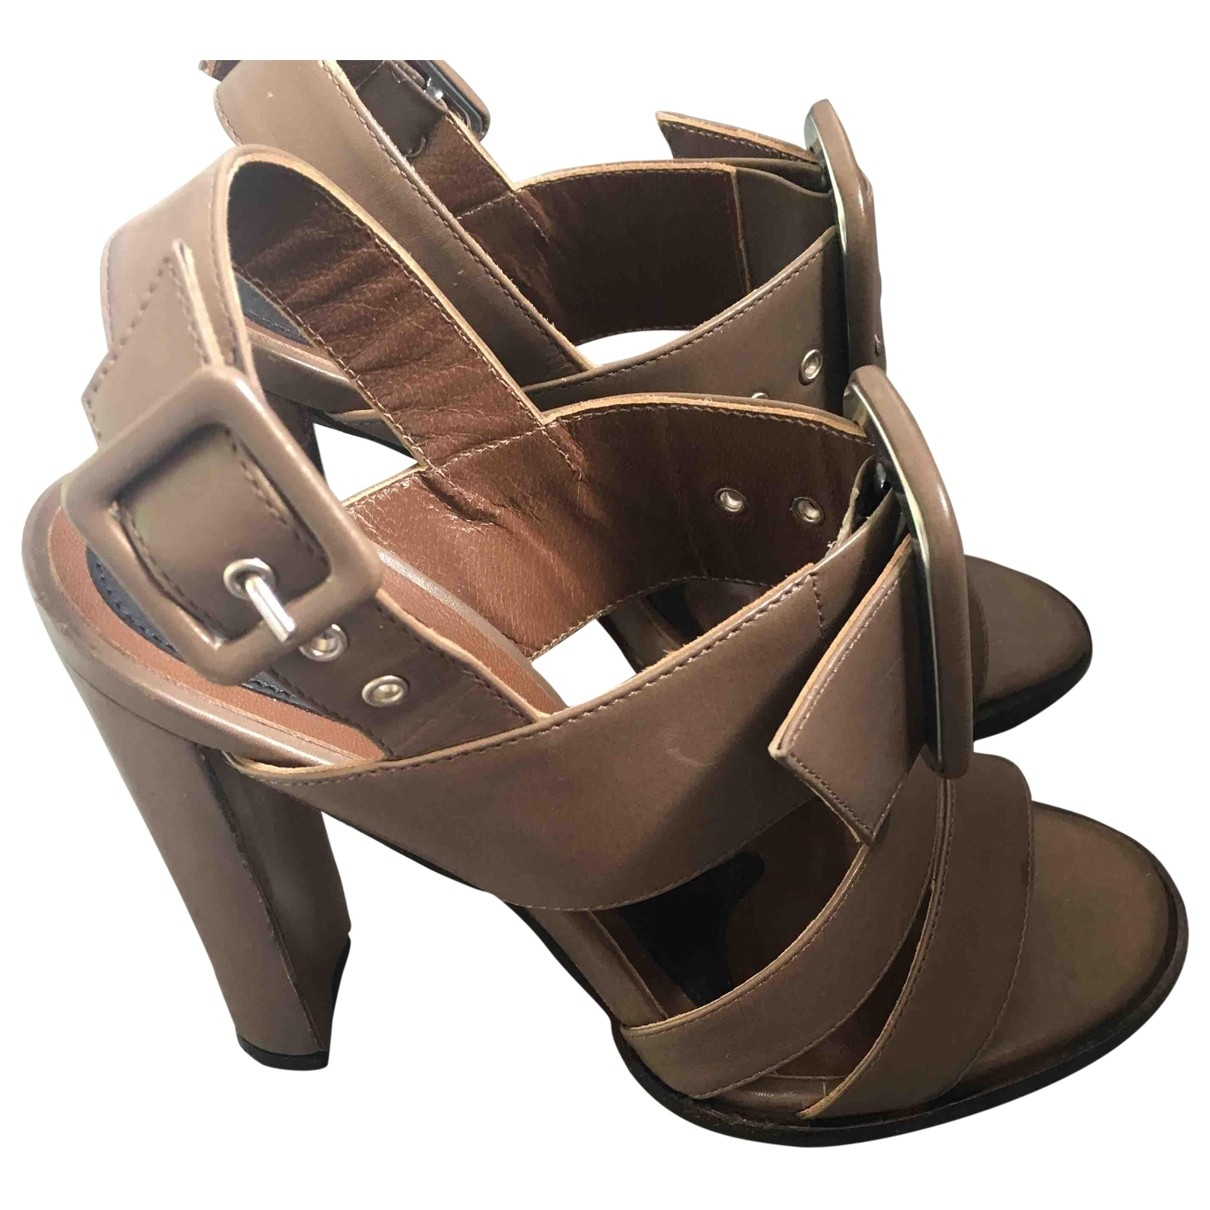 Marni \N Beige Leather Heels for Women 35 EU